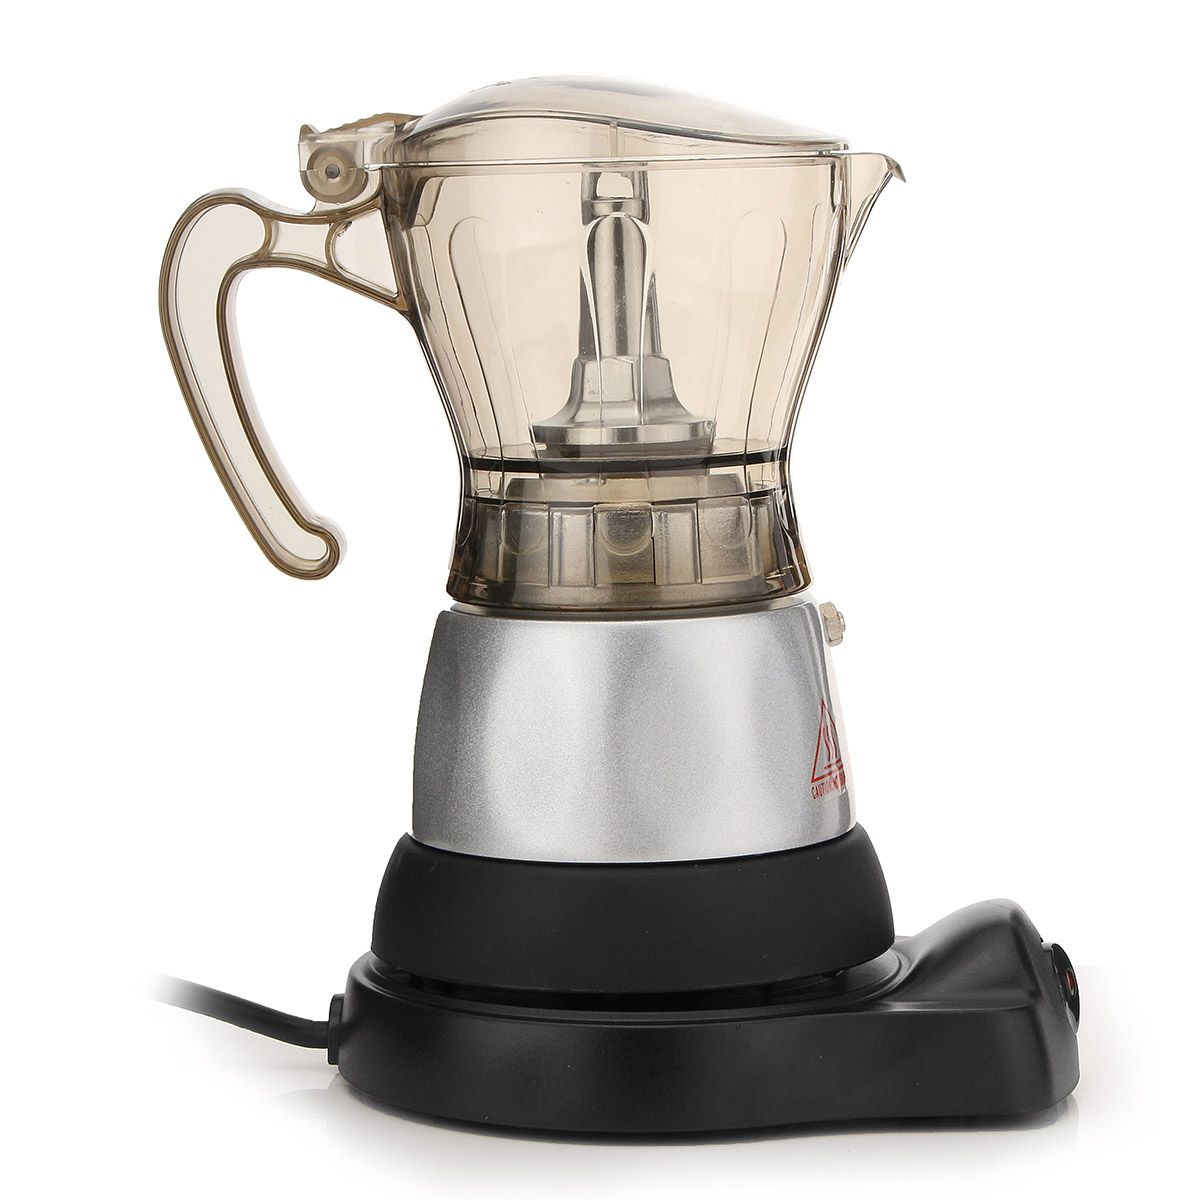 Uncategorized Discount Kitchen Appliances Melbourne fully automatic transparent coffee maker cafetera express on sale at reasonable prices buy machine lazy pot kitchen applia